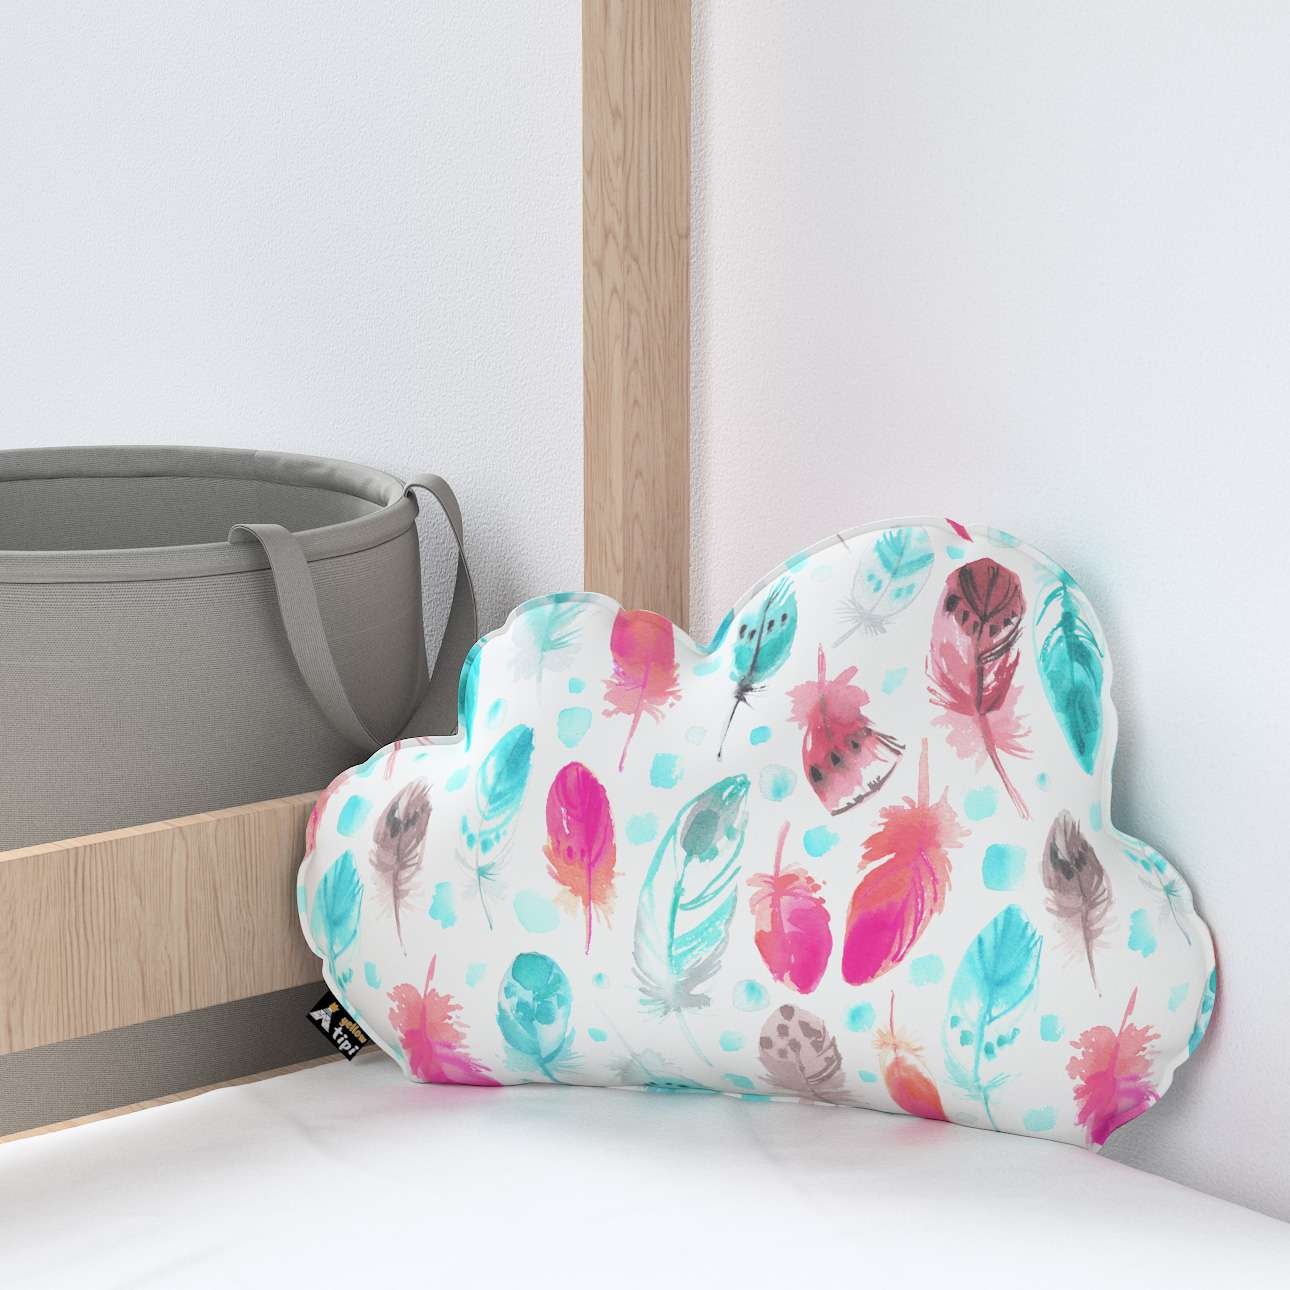 Soft Cloud pillow in collection Magic Collection, fabric: 500-17